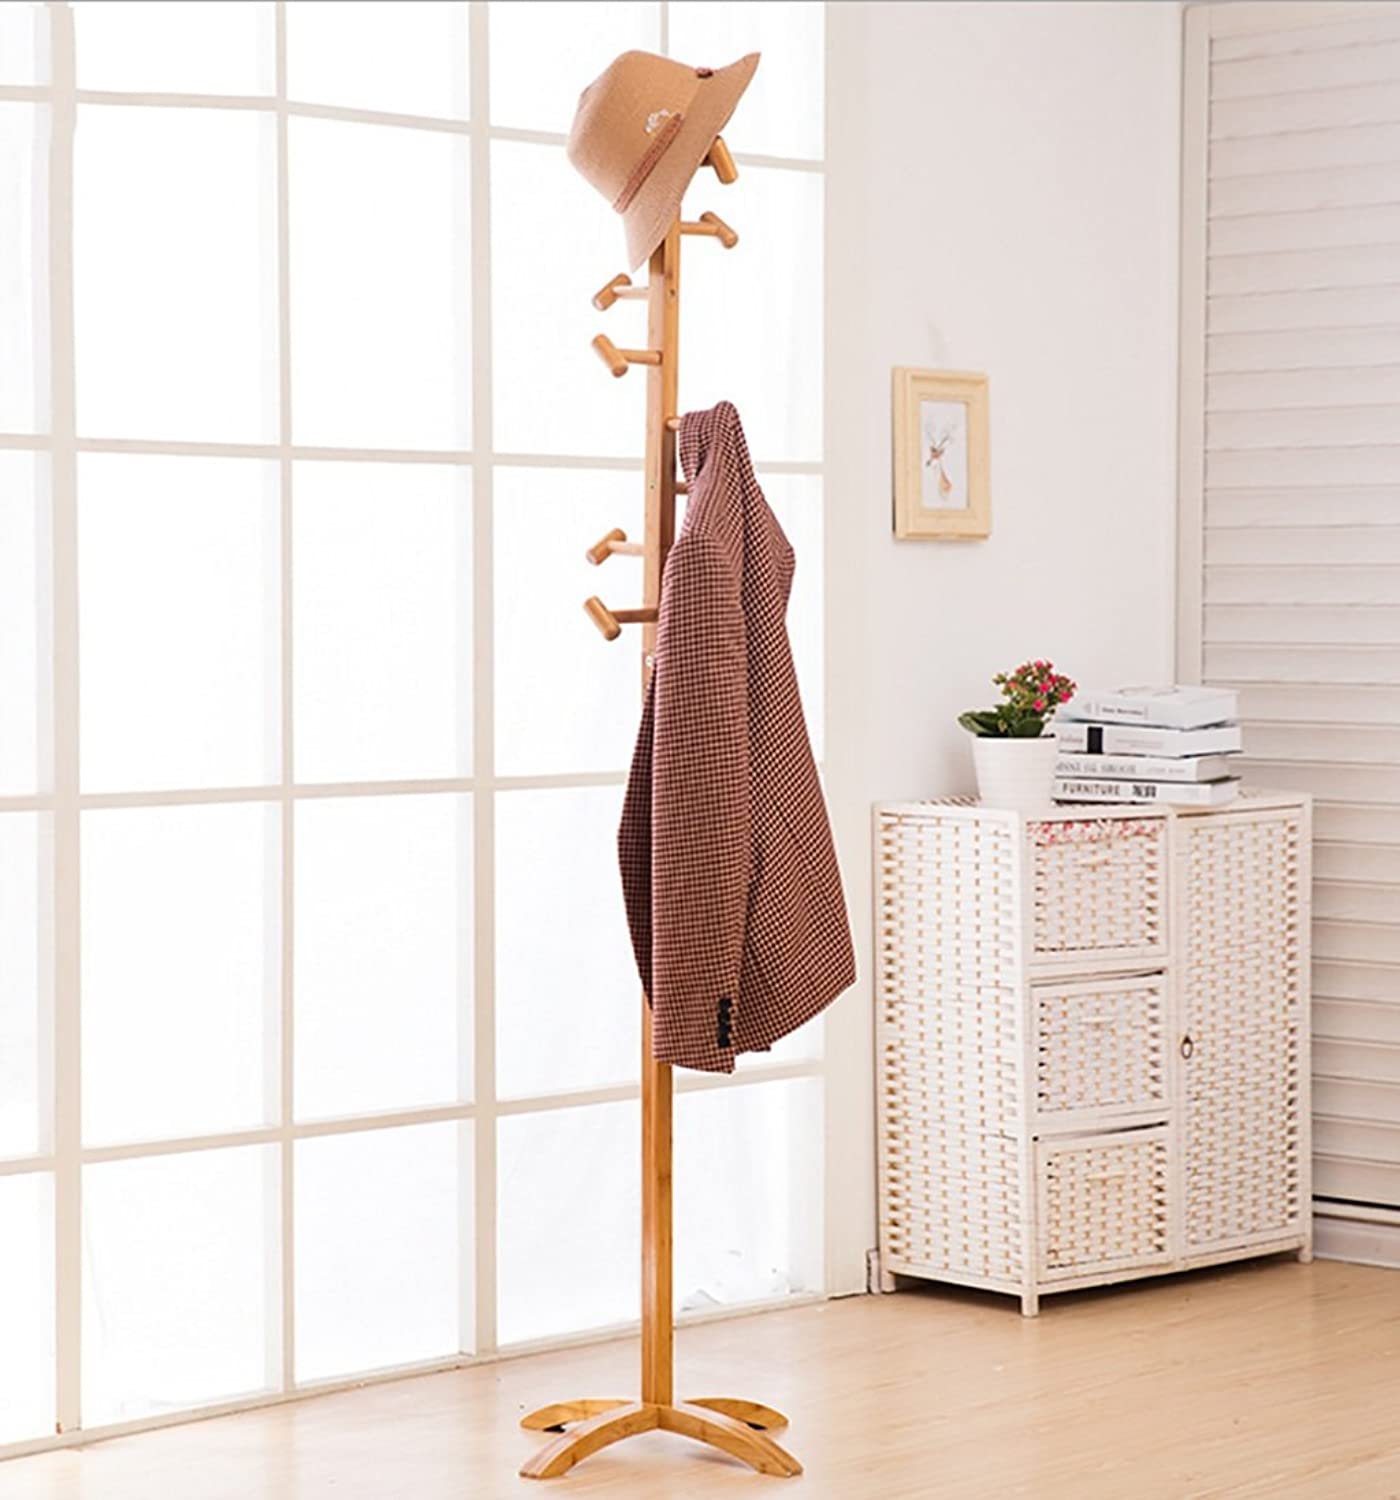 JPYMJ Wooden Coat Stand 9 Hooks Hat and Coat Rack Free Standing Tree Clothes Rail Hanging Storage Organiser for Entryway Hallway Bedroom Closet Wardrobe 175CM